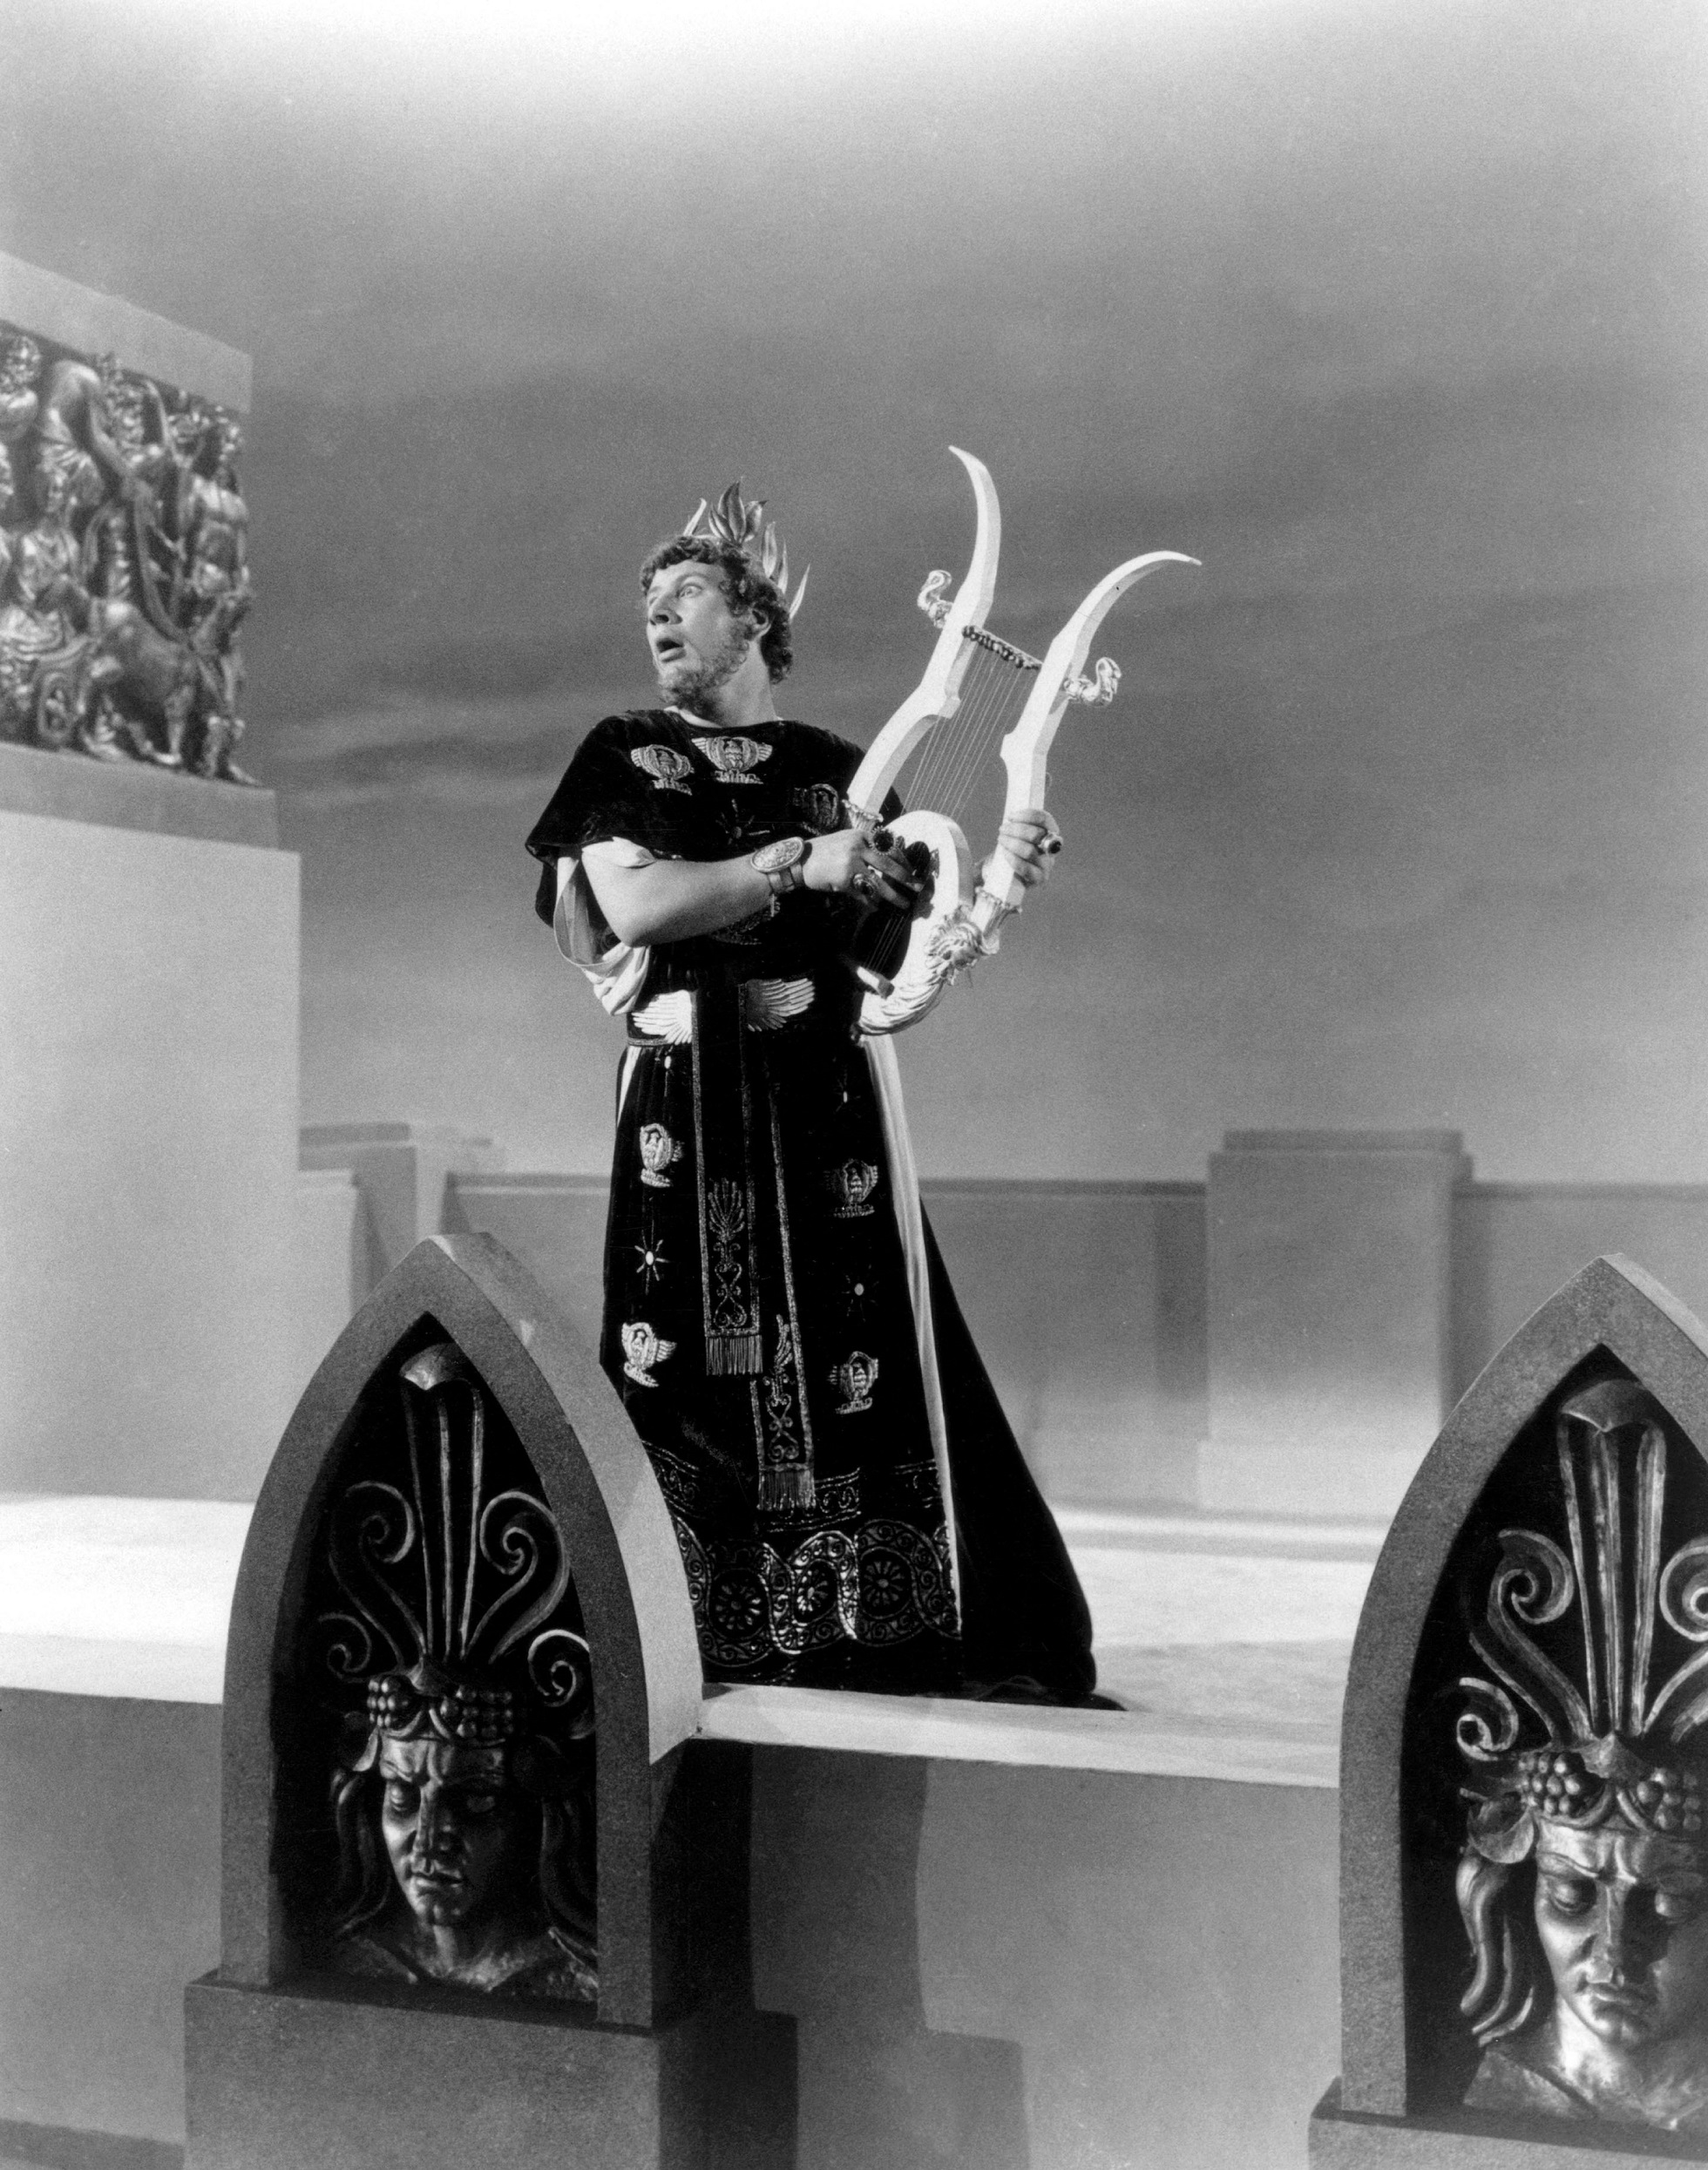 Black and white still from a film. Nero played by Peter Ustinov stands on a roof terrace wearing a long robe and crown. He plays the lyre and looks out, presumably over burning Rome, though the city cannot be seen.